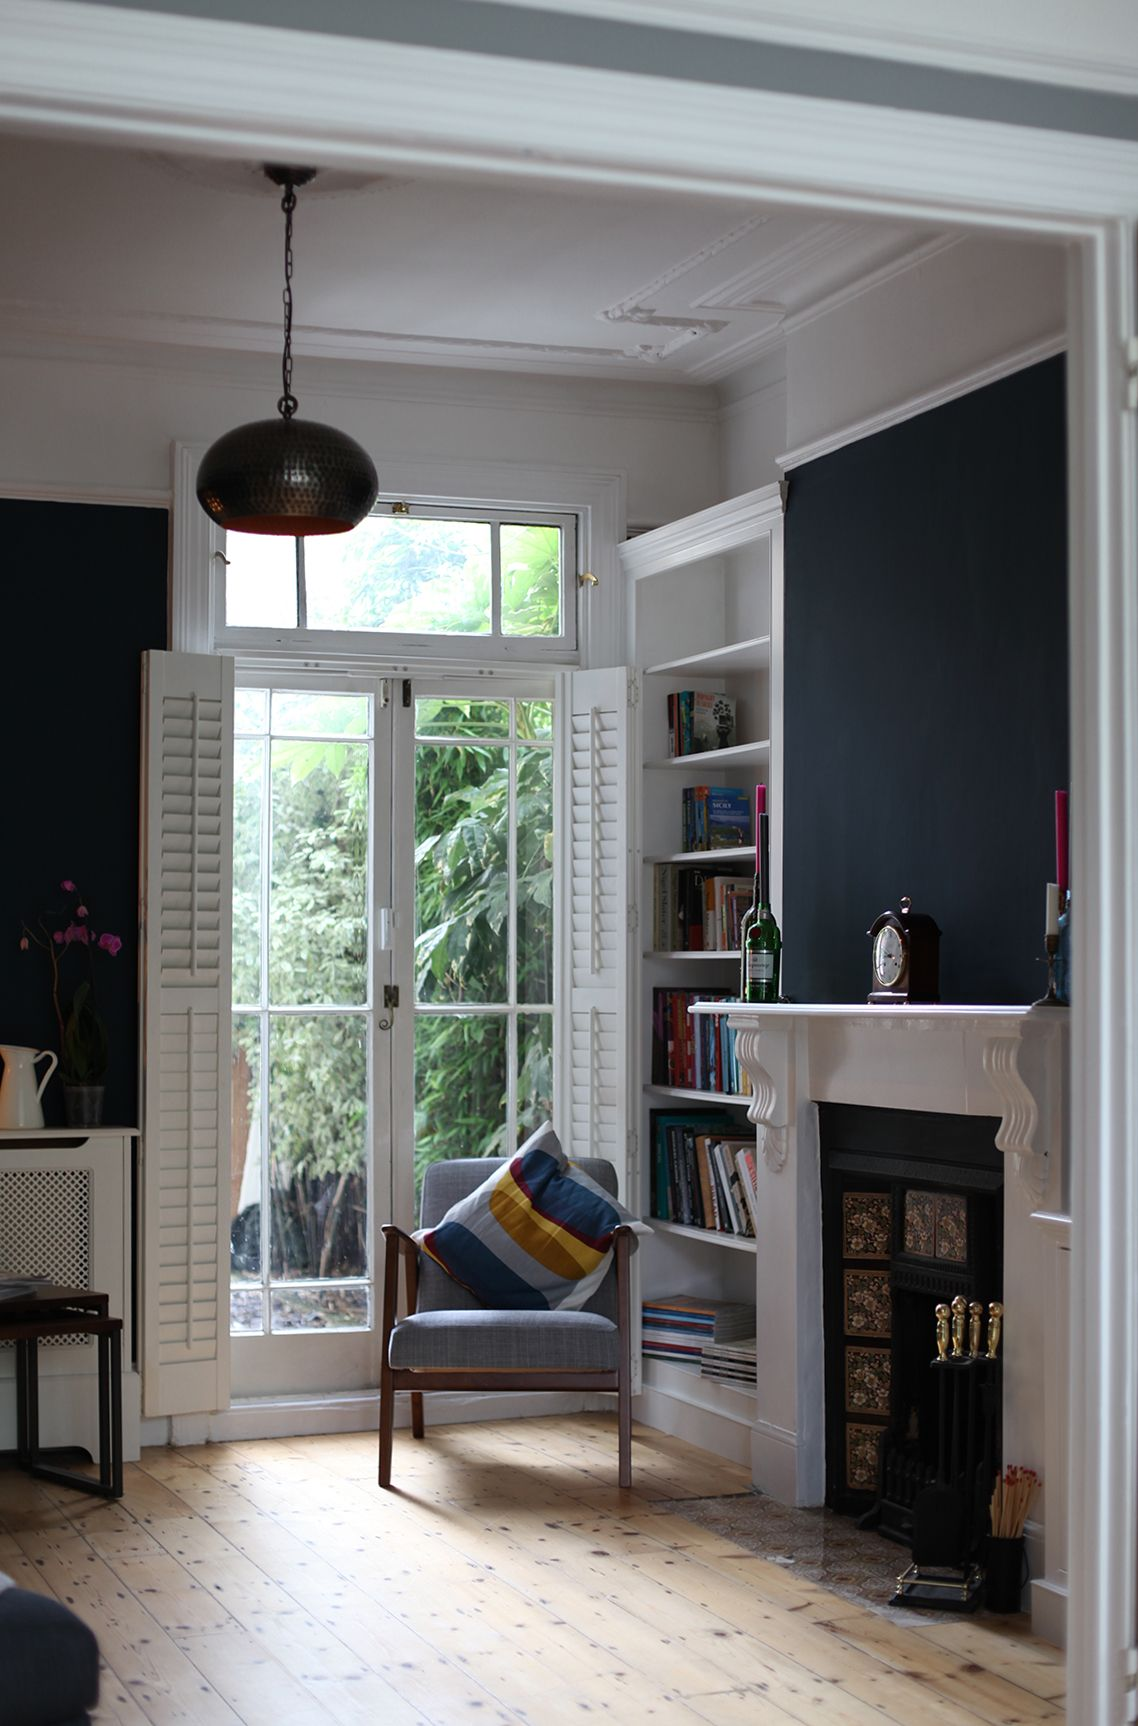 farrow ball hague blue no 30 estate emulsion for this. Black Bedroom Furniture Sets. Home Design Ideas